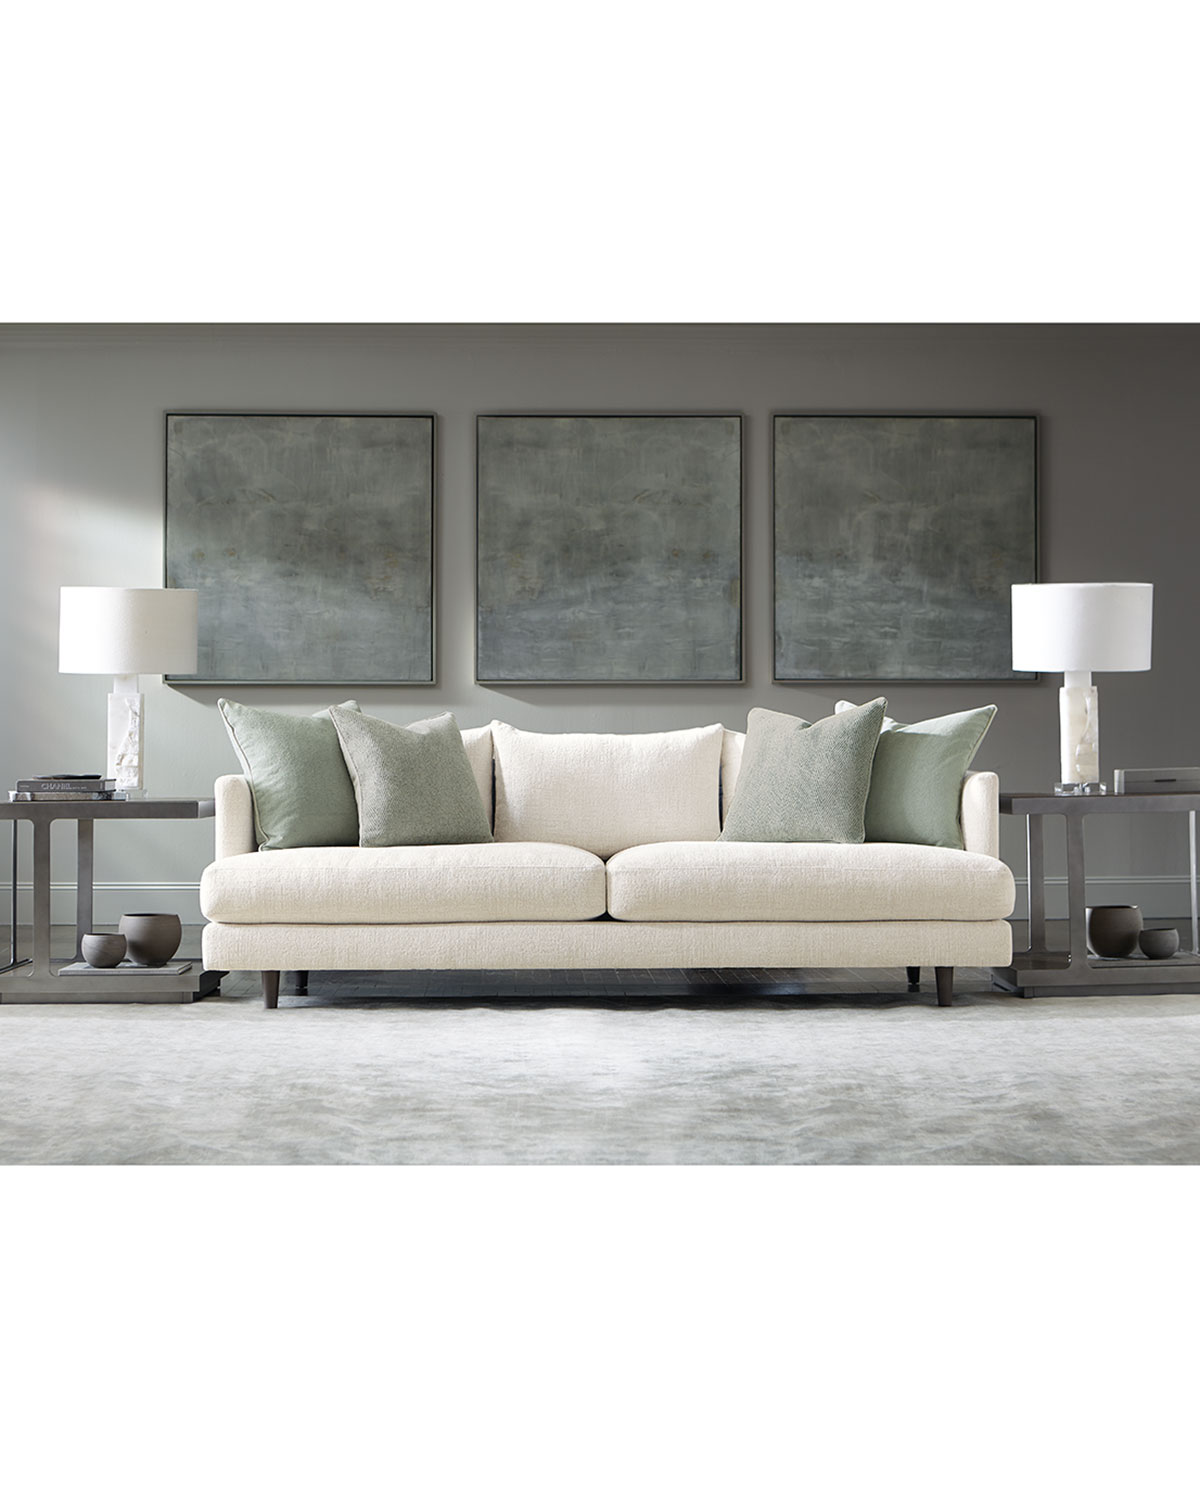 Bernhardt Collette Sofa, 92""